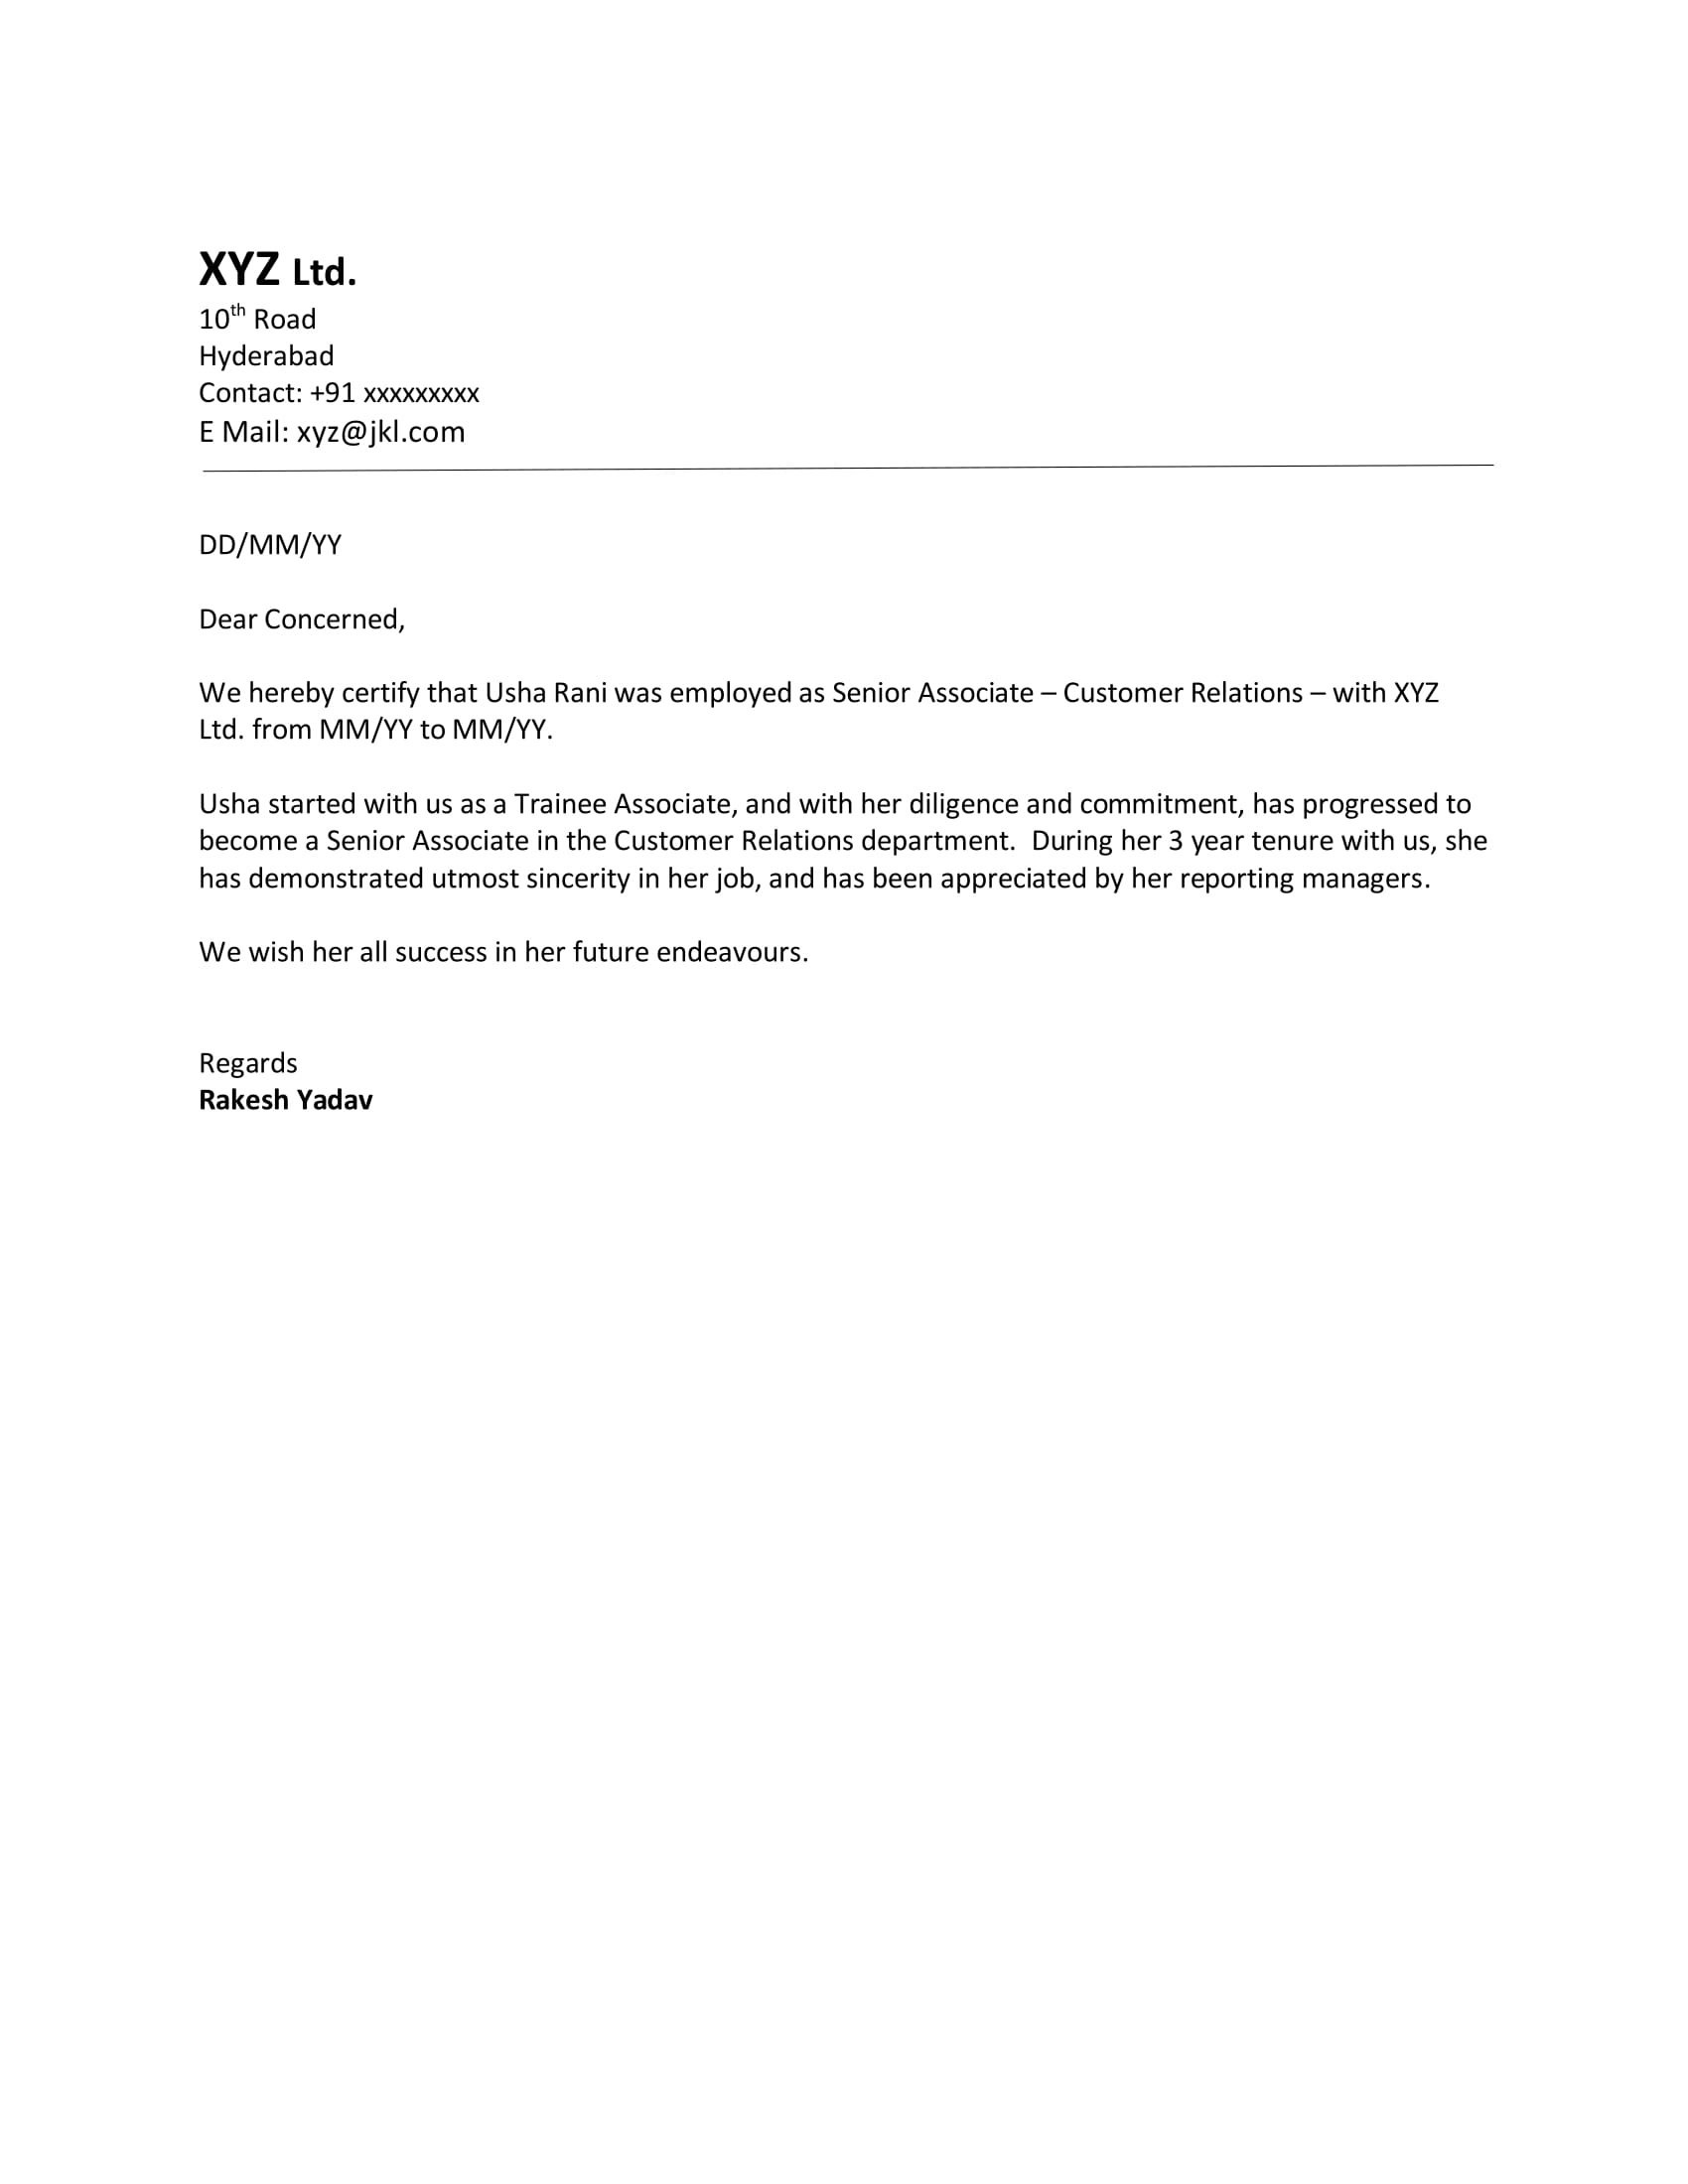 Experience letter format in word for hr executive lvelegant experience s le letter spiritdancerdesigns Image collections